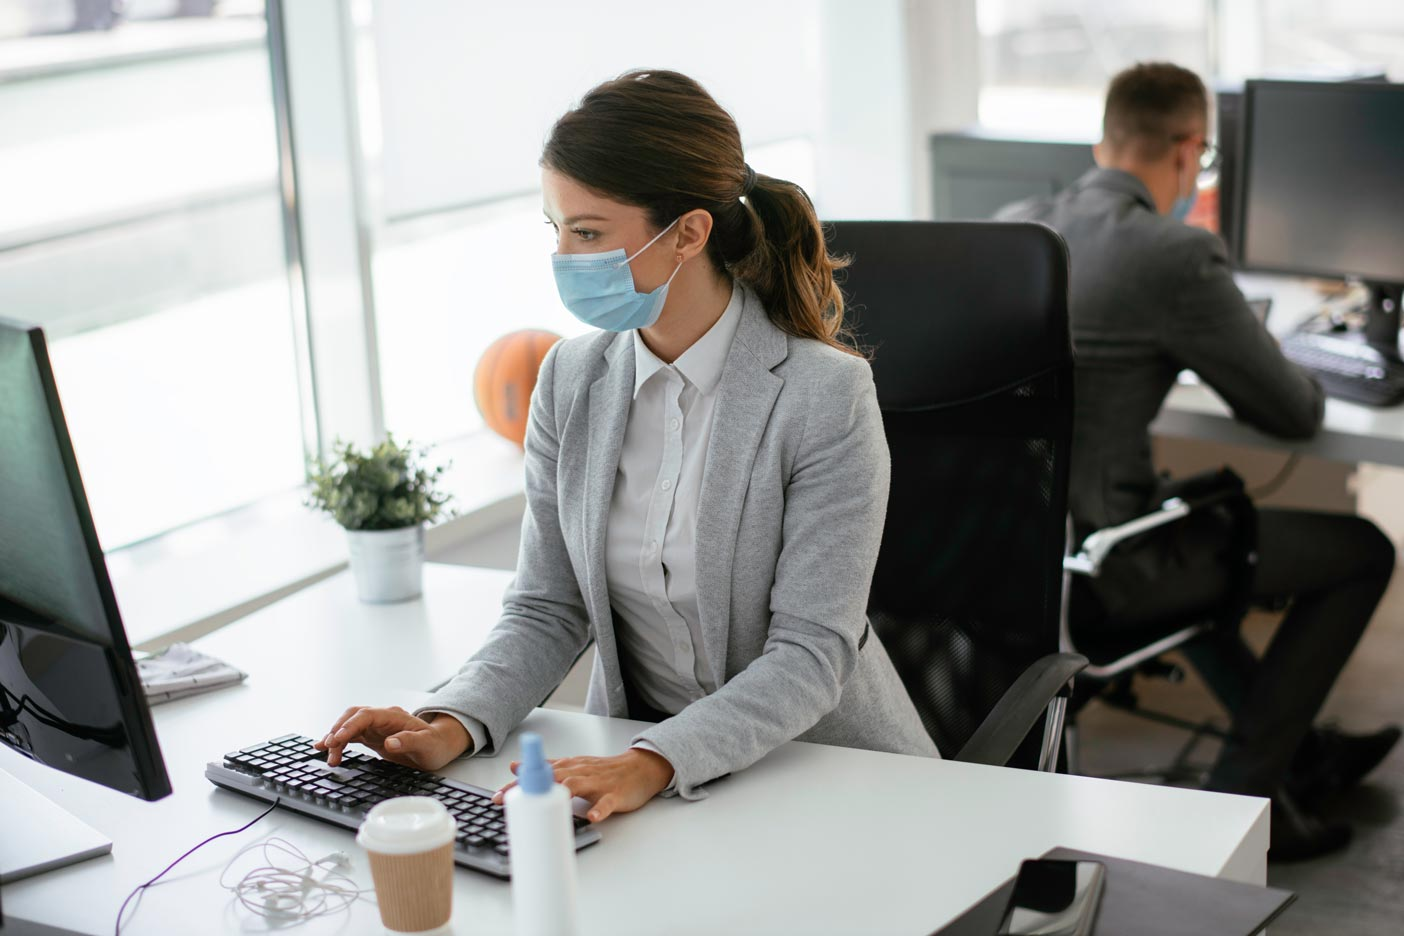 Covid 19 Virus Disinfection Services for Offices